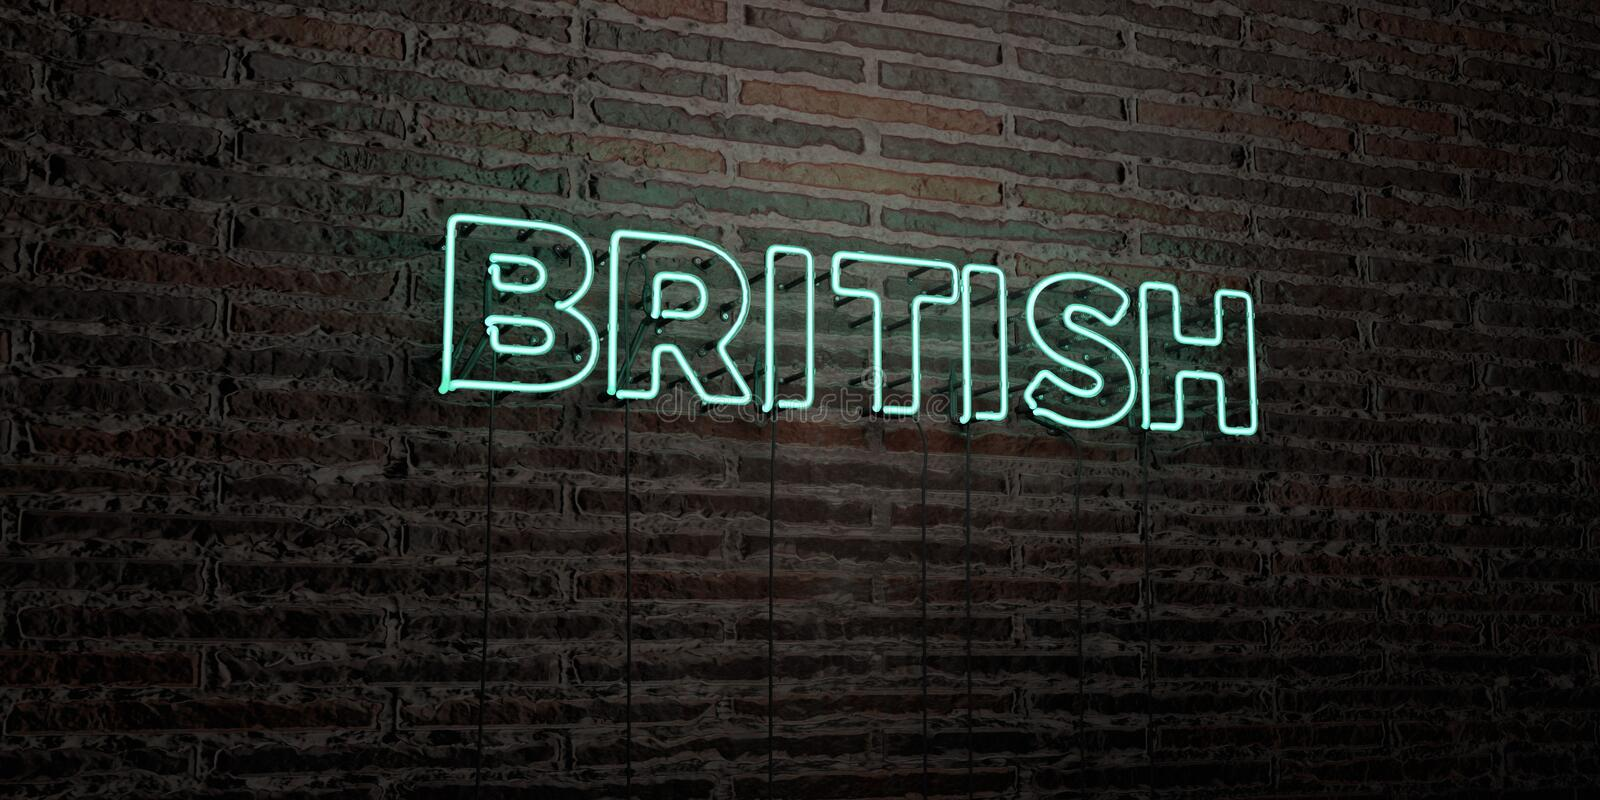 BRITISH -Realistic Neon Sign on Brick Wall background - 3D rendered royalty free stock image royalty free illustration